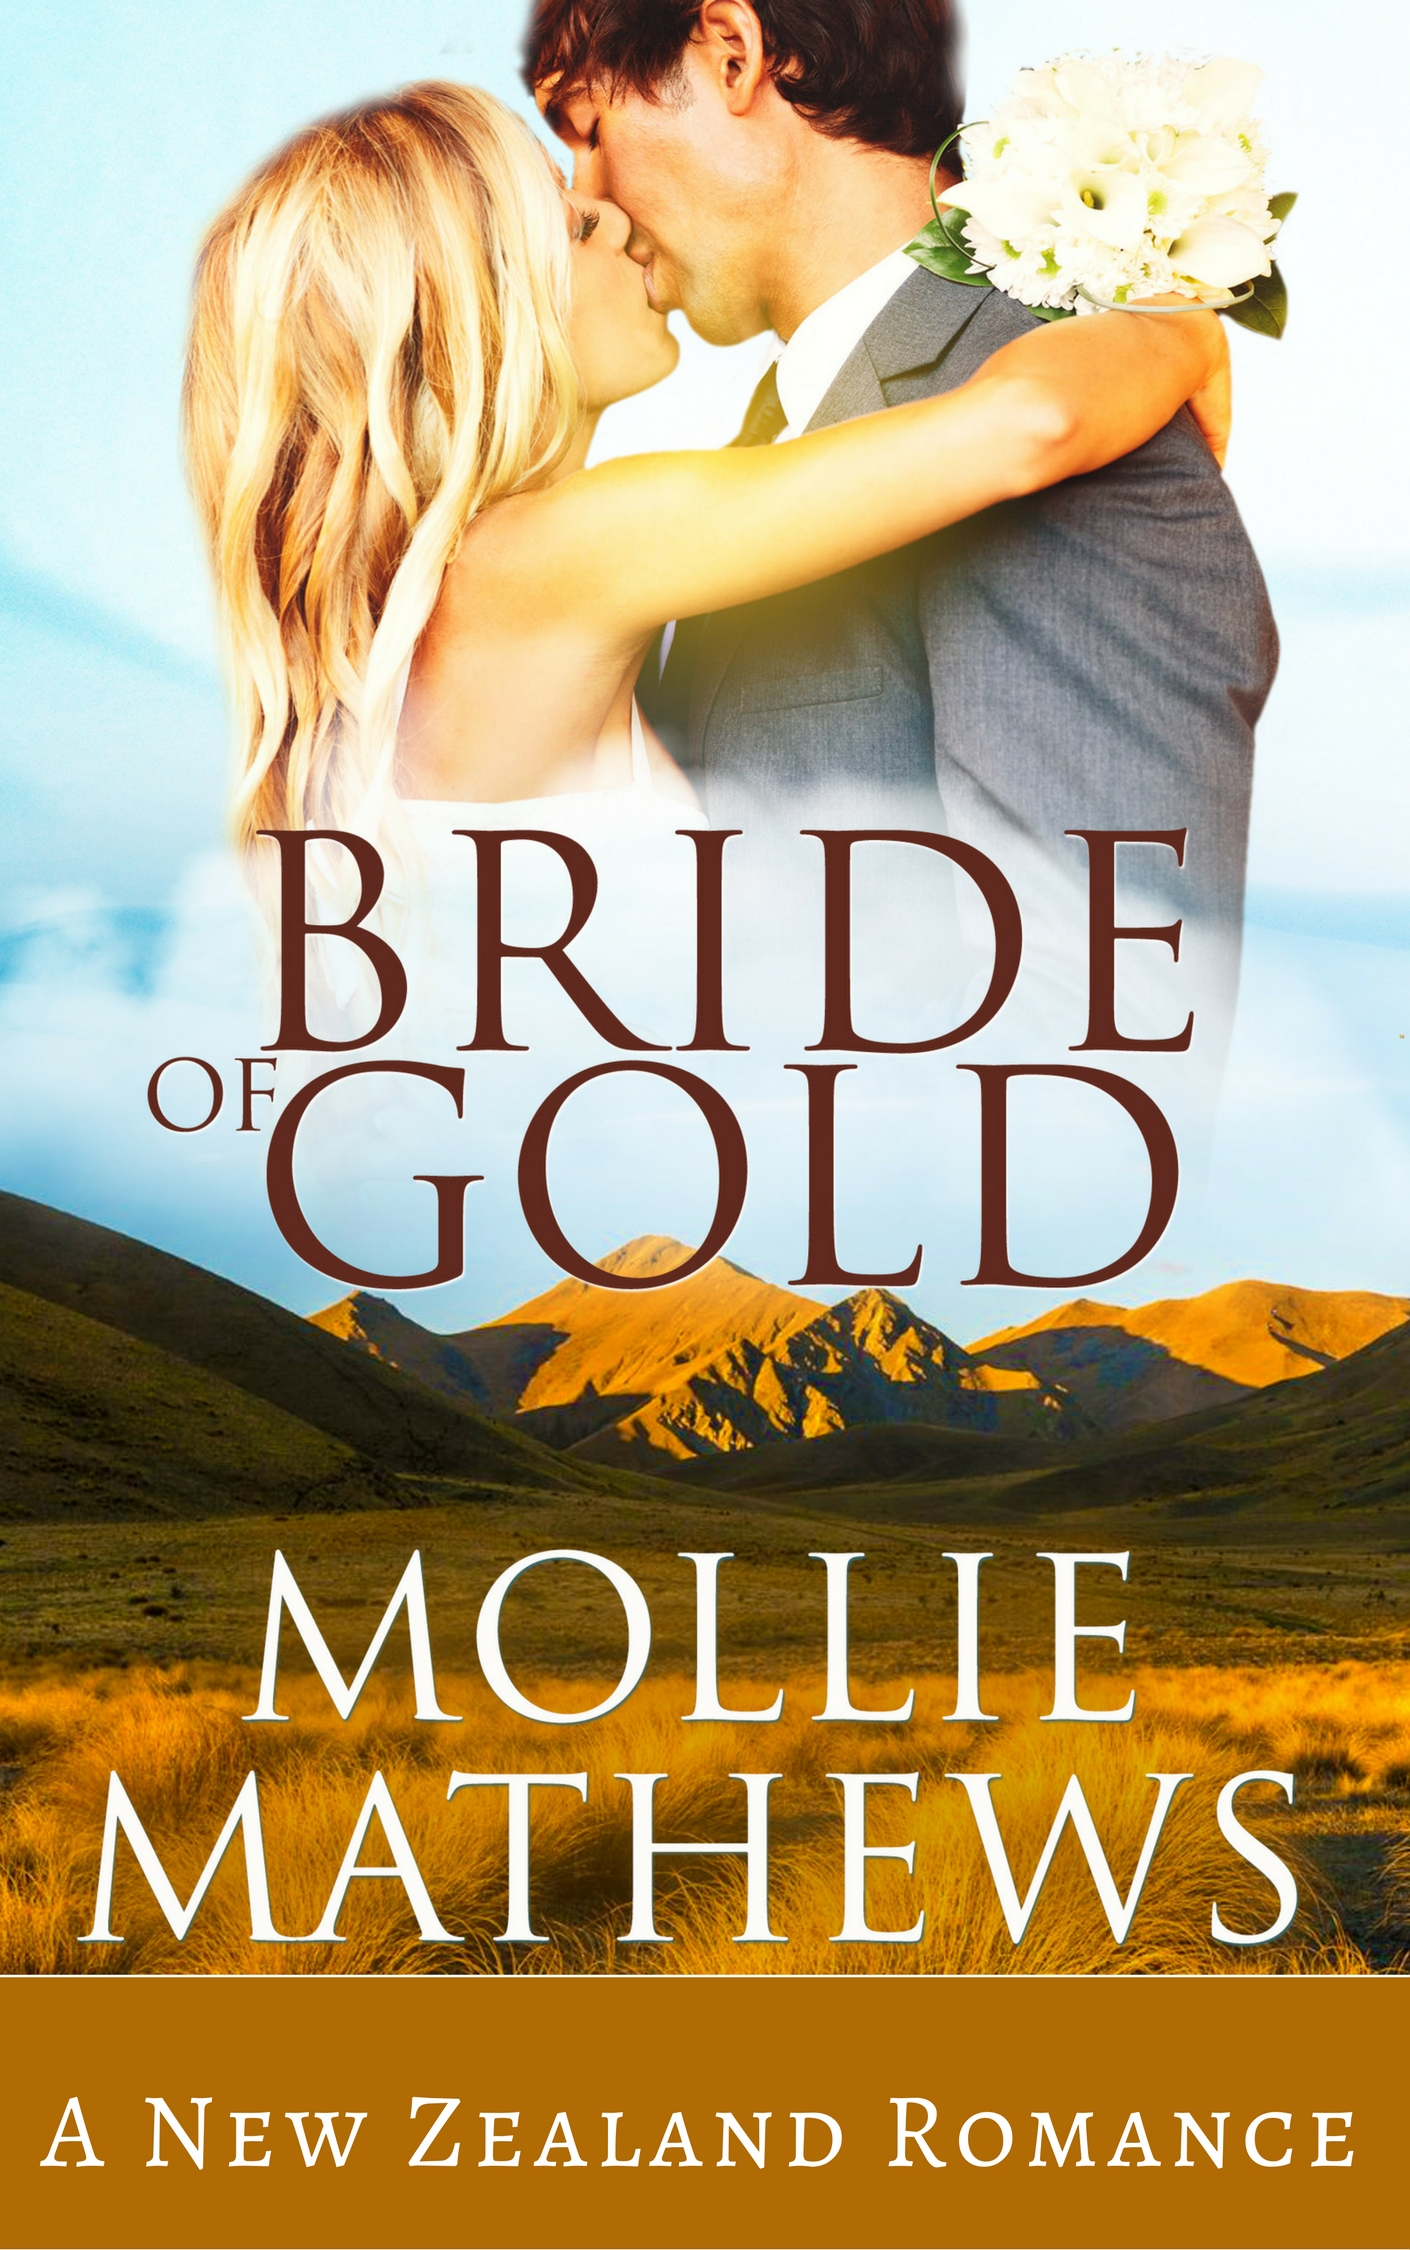 Bride of Gold a New Zealand Romance